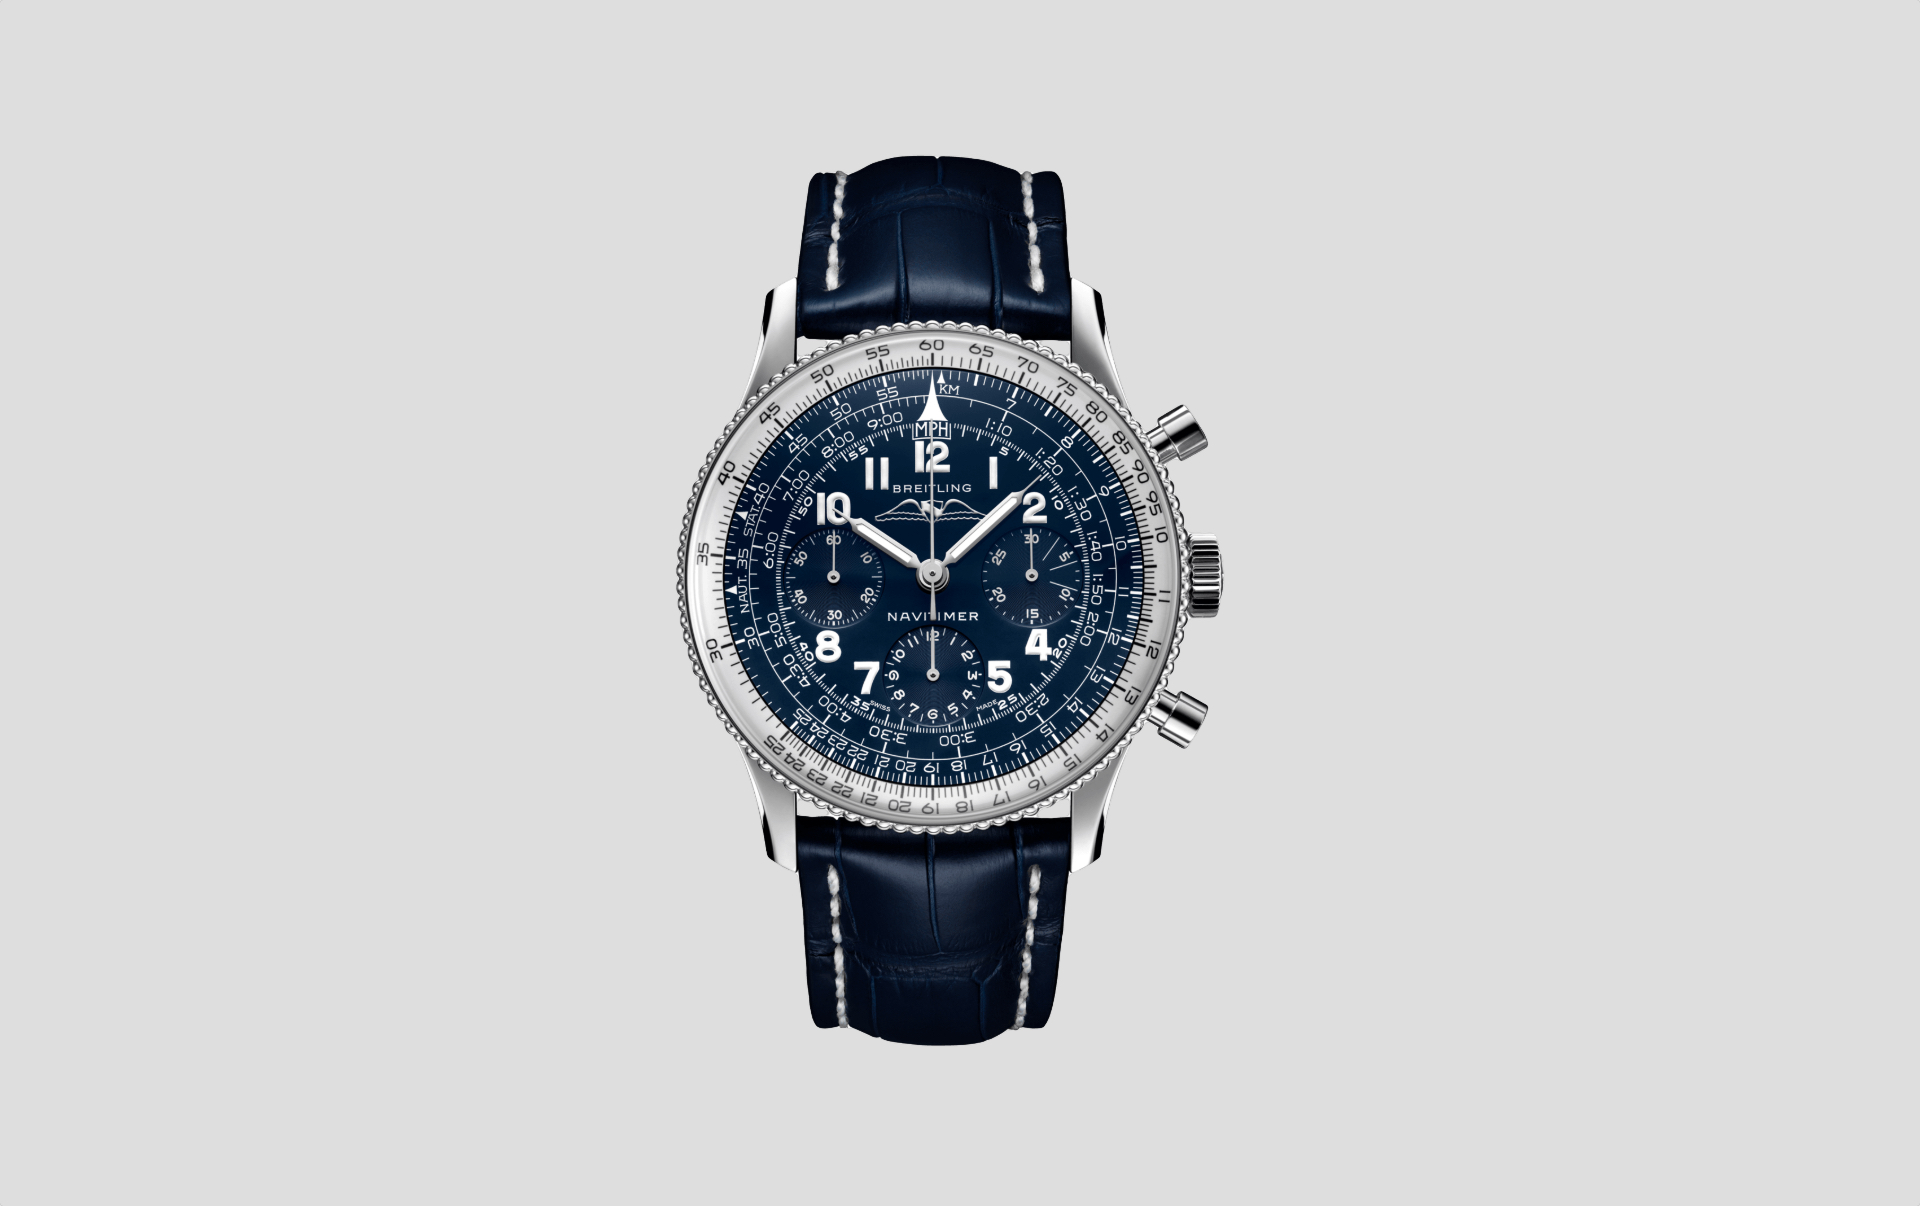 Breitling Navitimer 1959 Edition in platinum